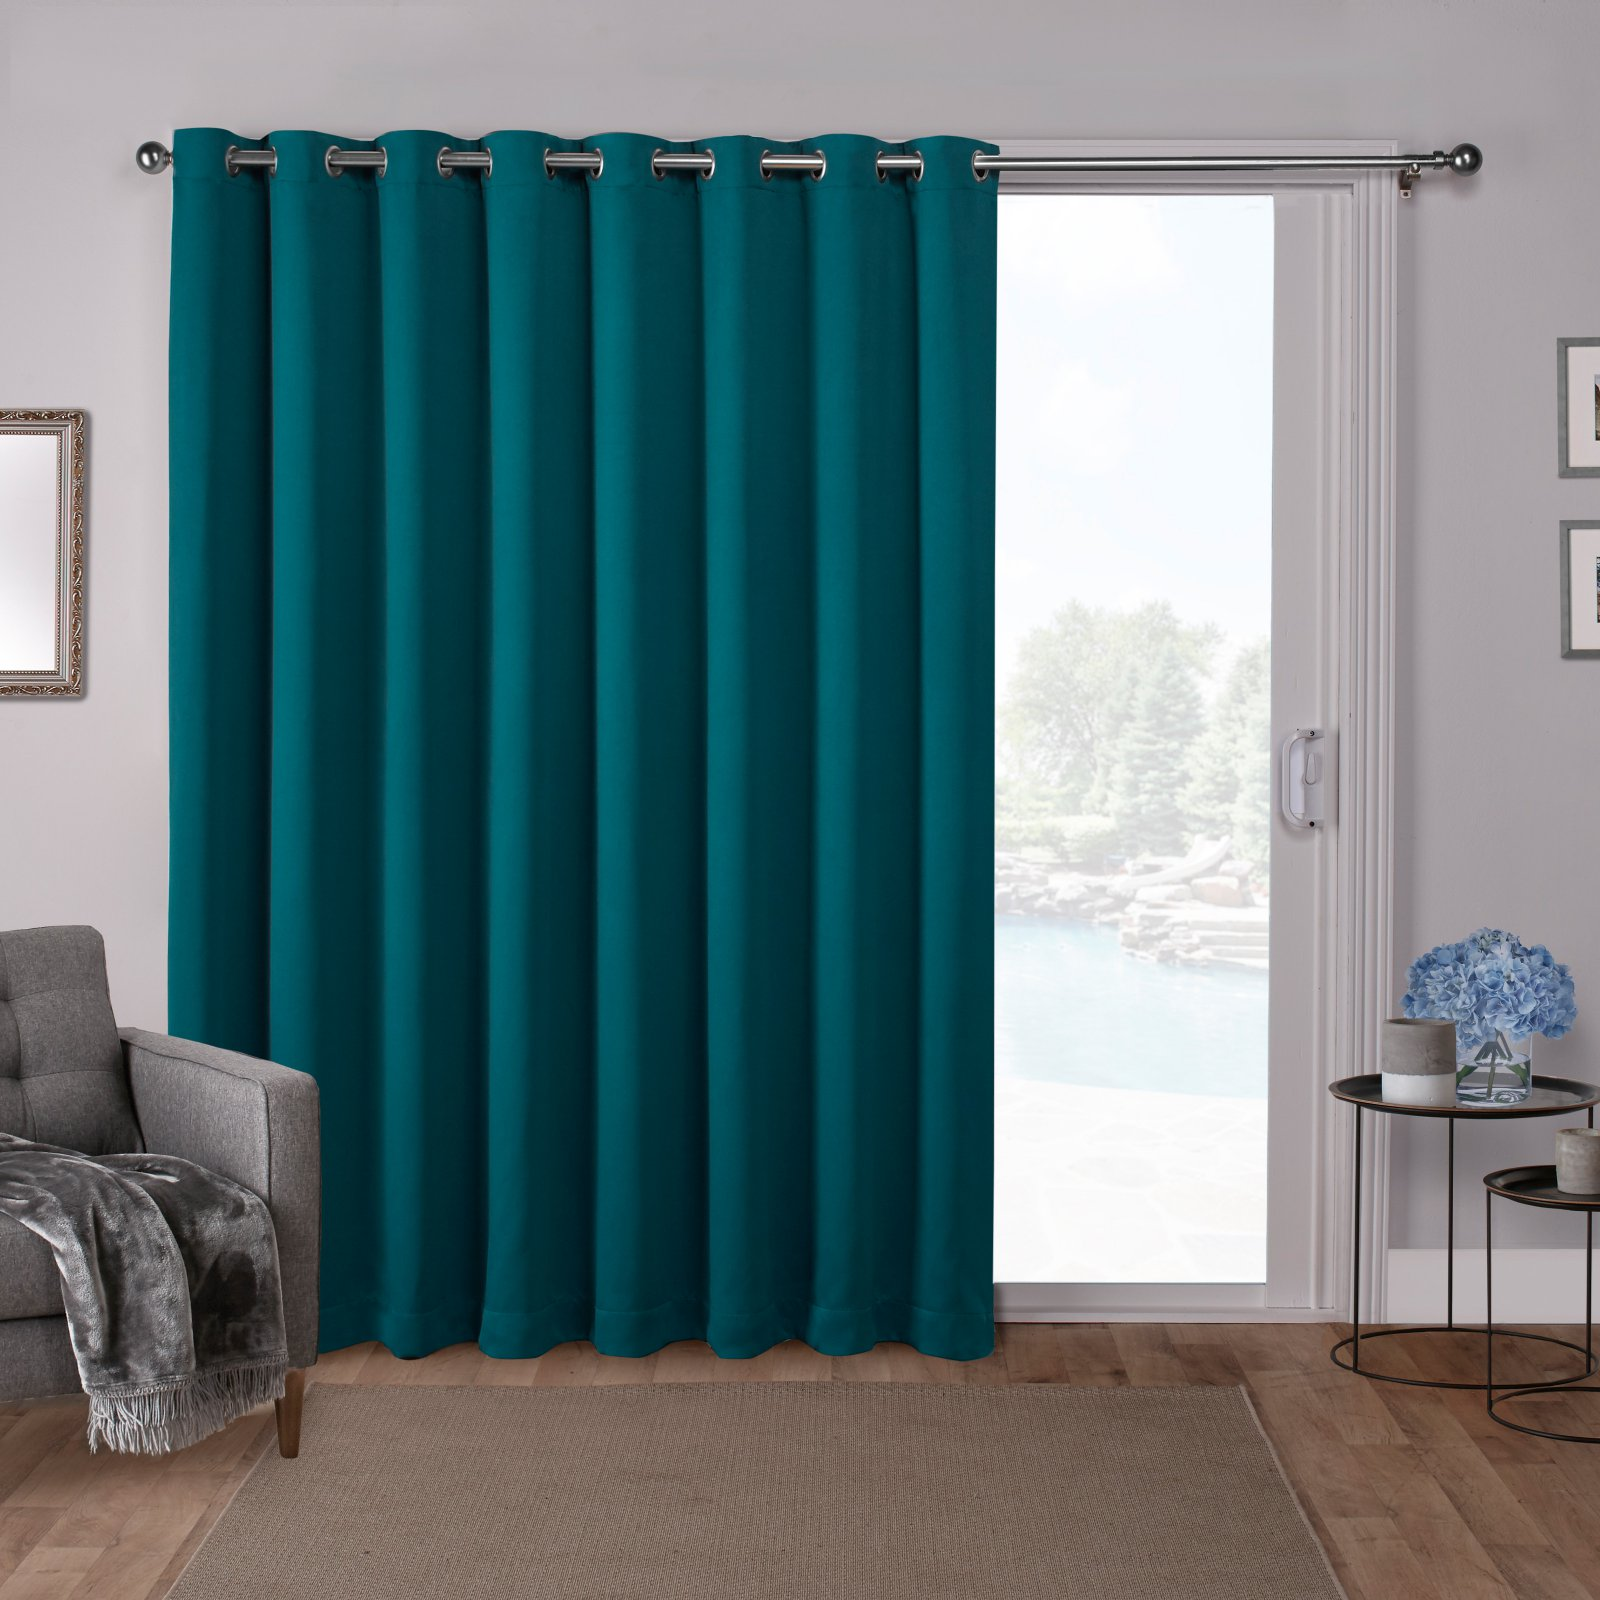 Exclusive Home Curtains 1 Pack Sa Blackout Wide Patio Grommet Top Single Curtain Panel